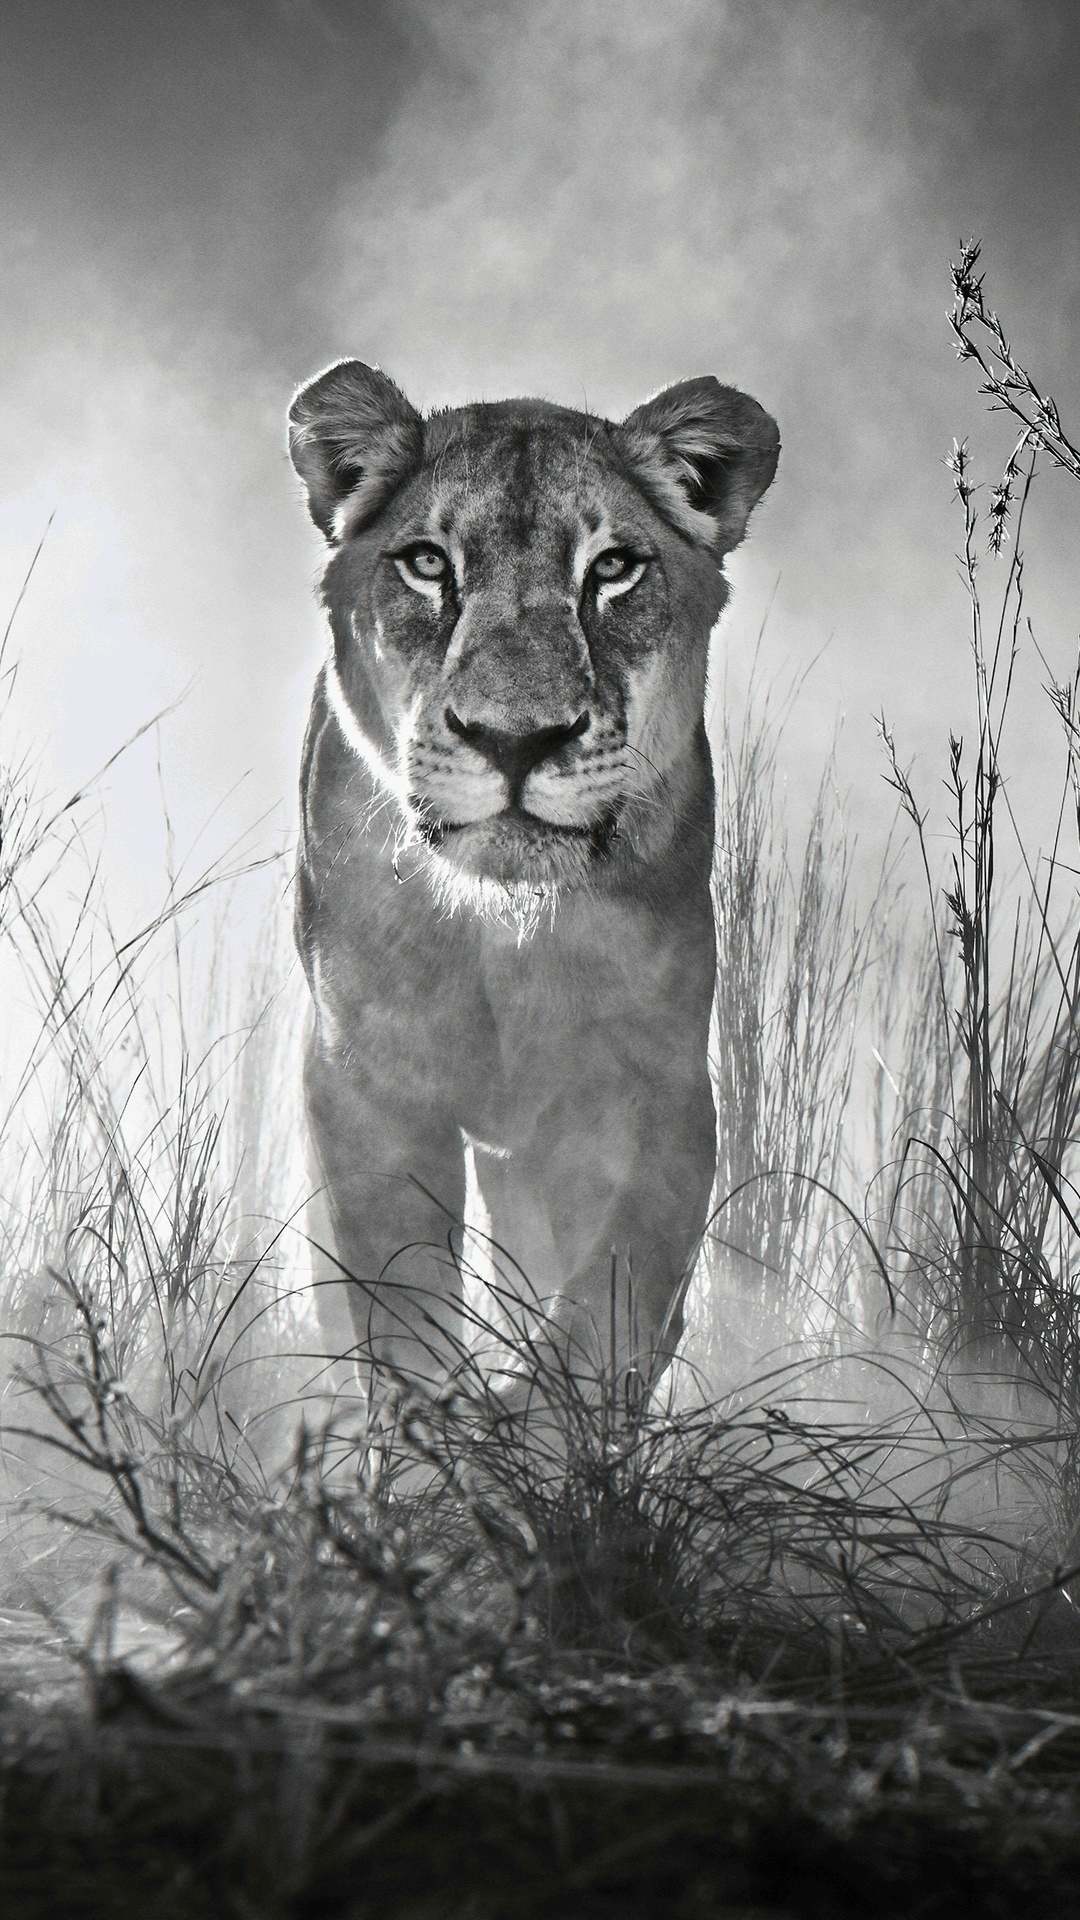 1080x1920 Lion 4k Black And White Iphone 7,6s,6 Plus ...